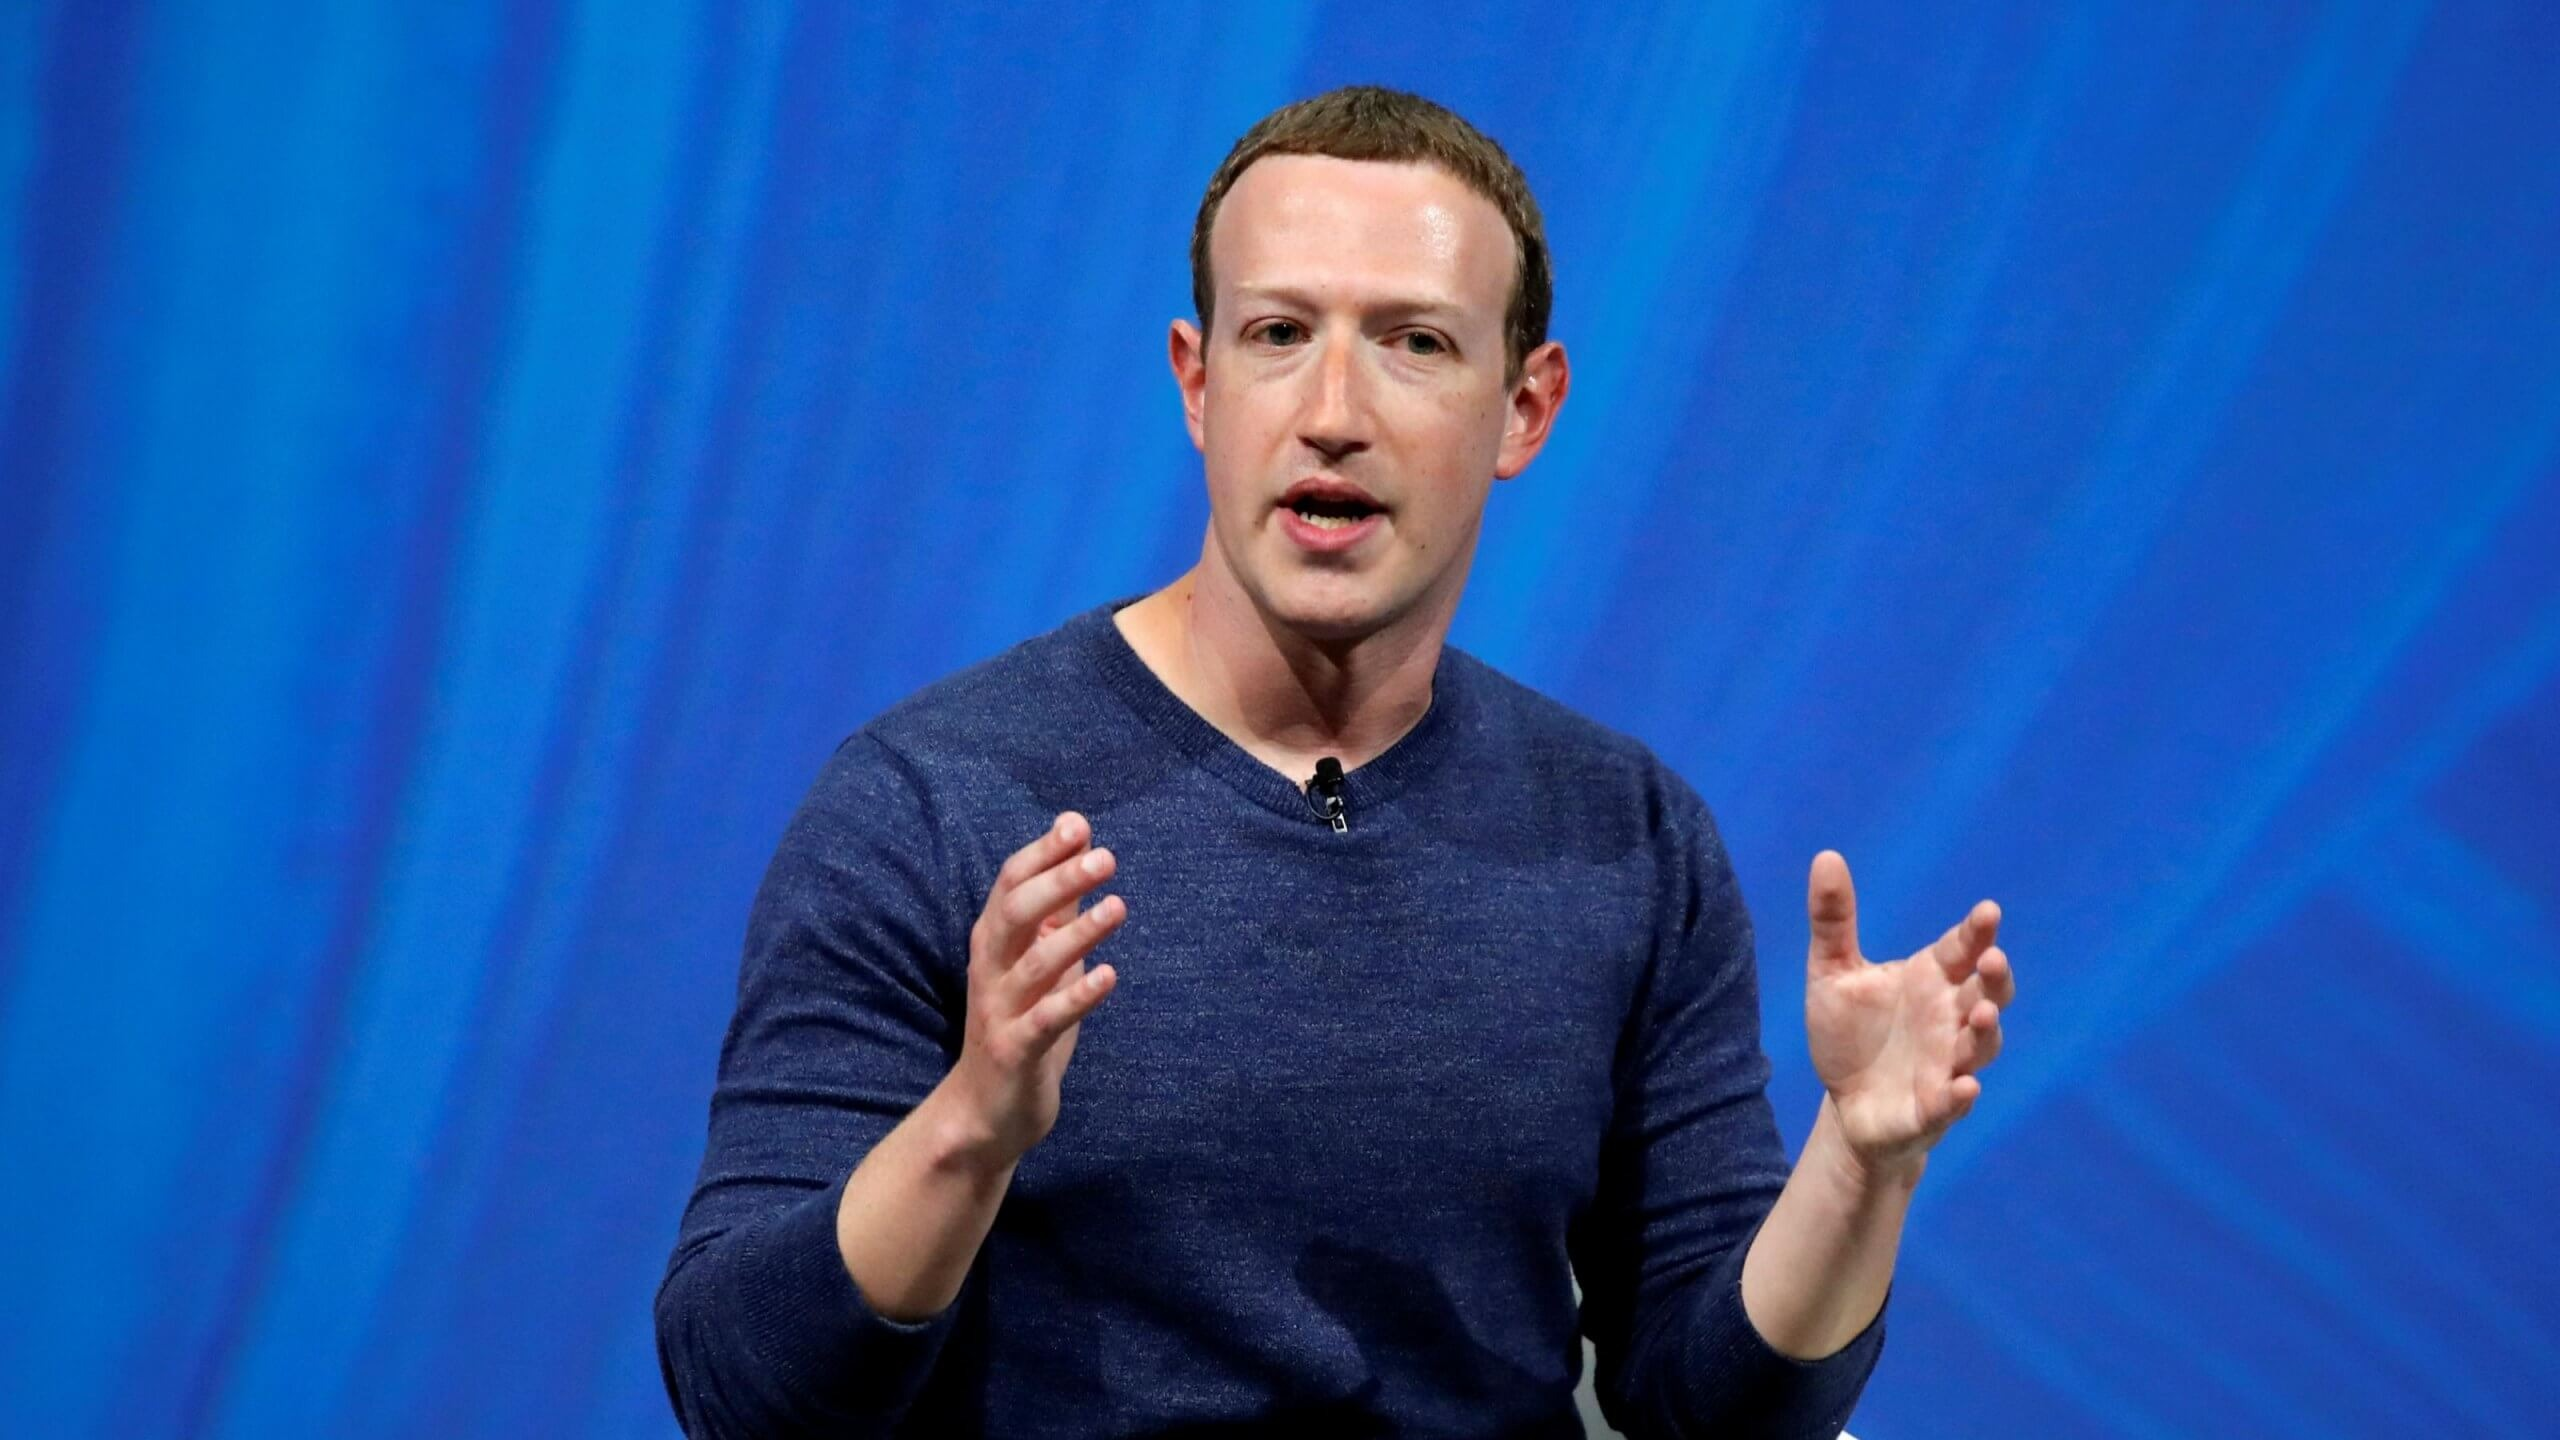 Facebook is testing an app that helps prisoners transition back into society